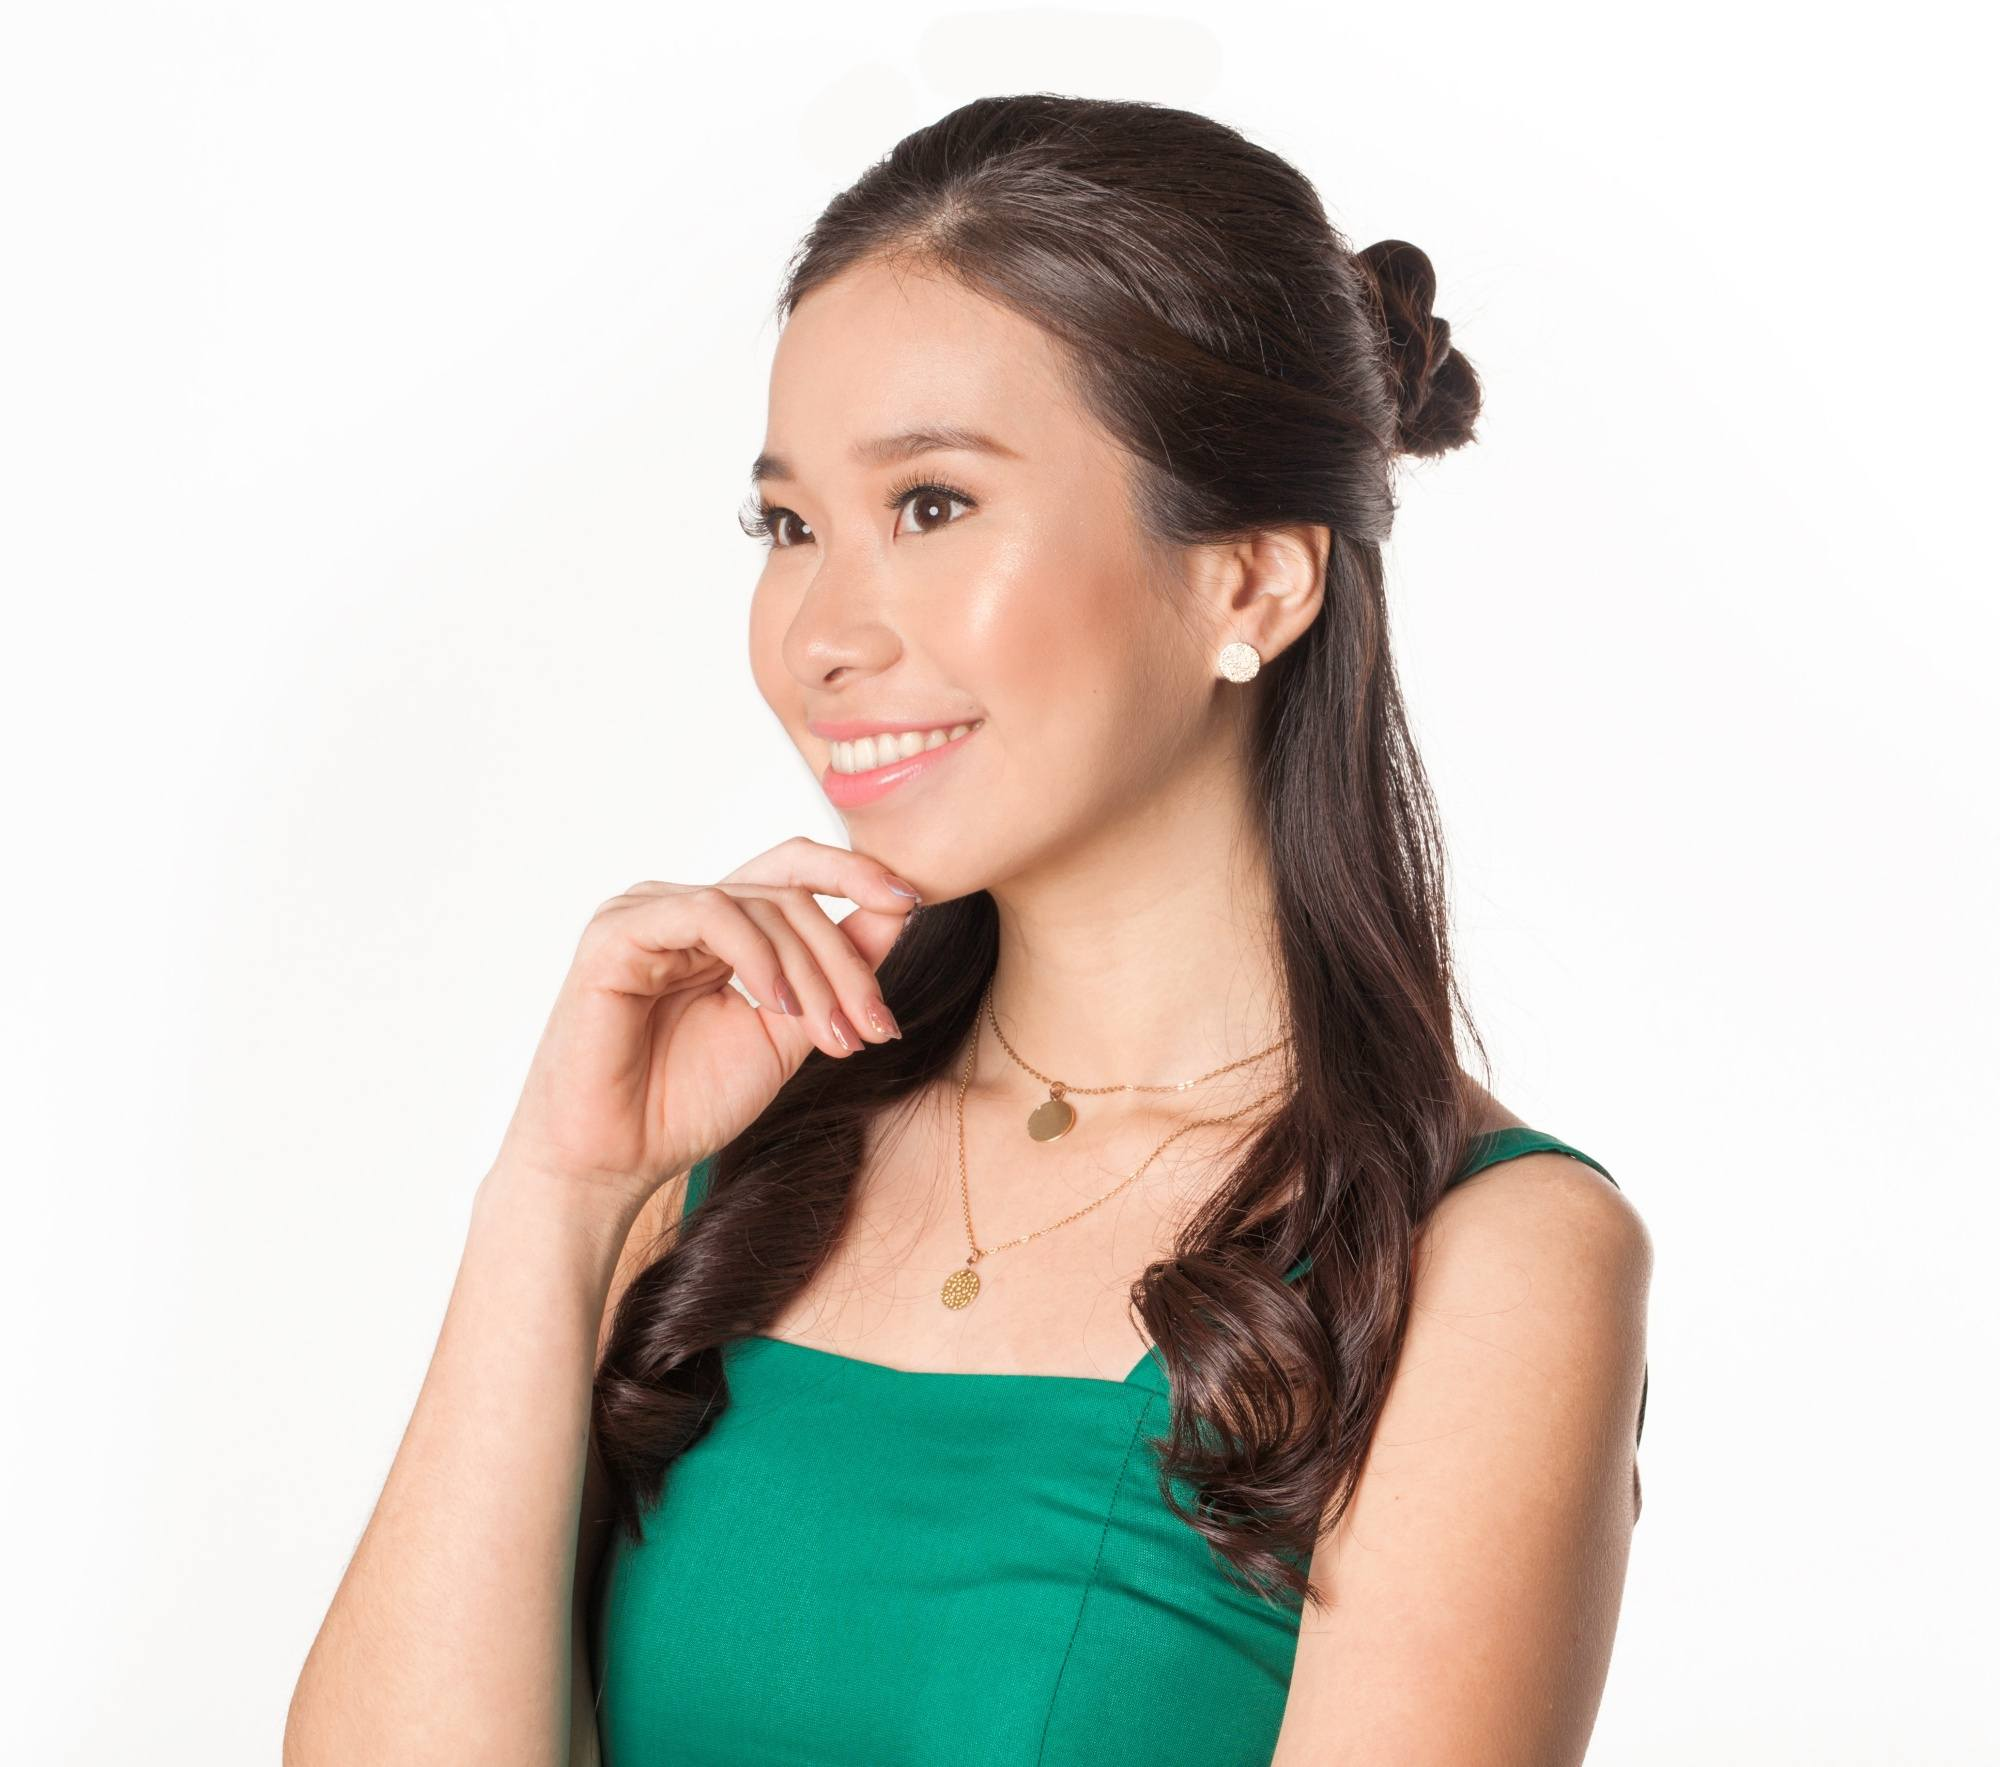 Casual Hairstyles: Closeup shot of an Asian woman with long dark hair in a half updo with bun smiling and wearing a green dress